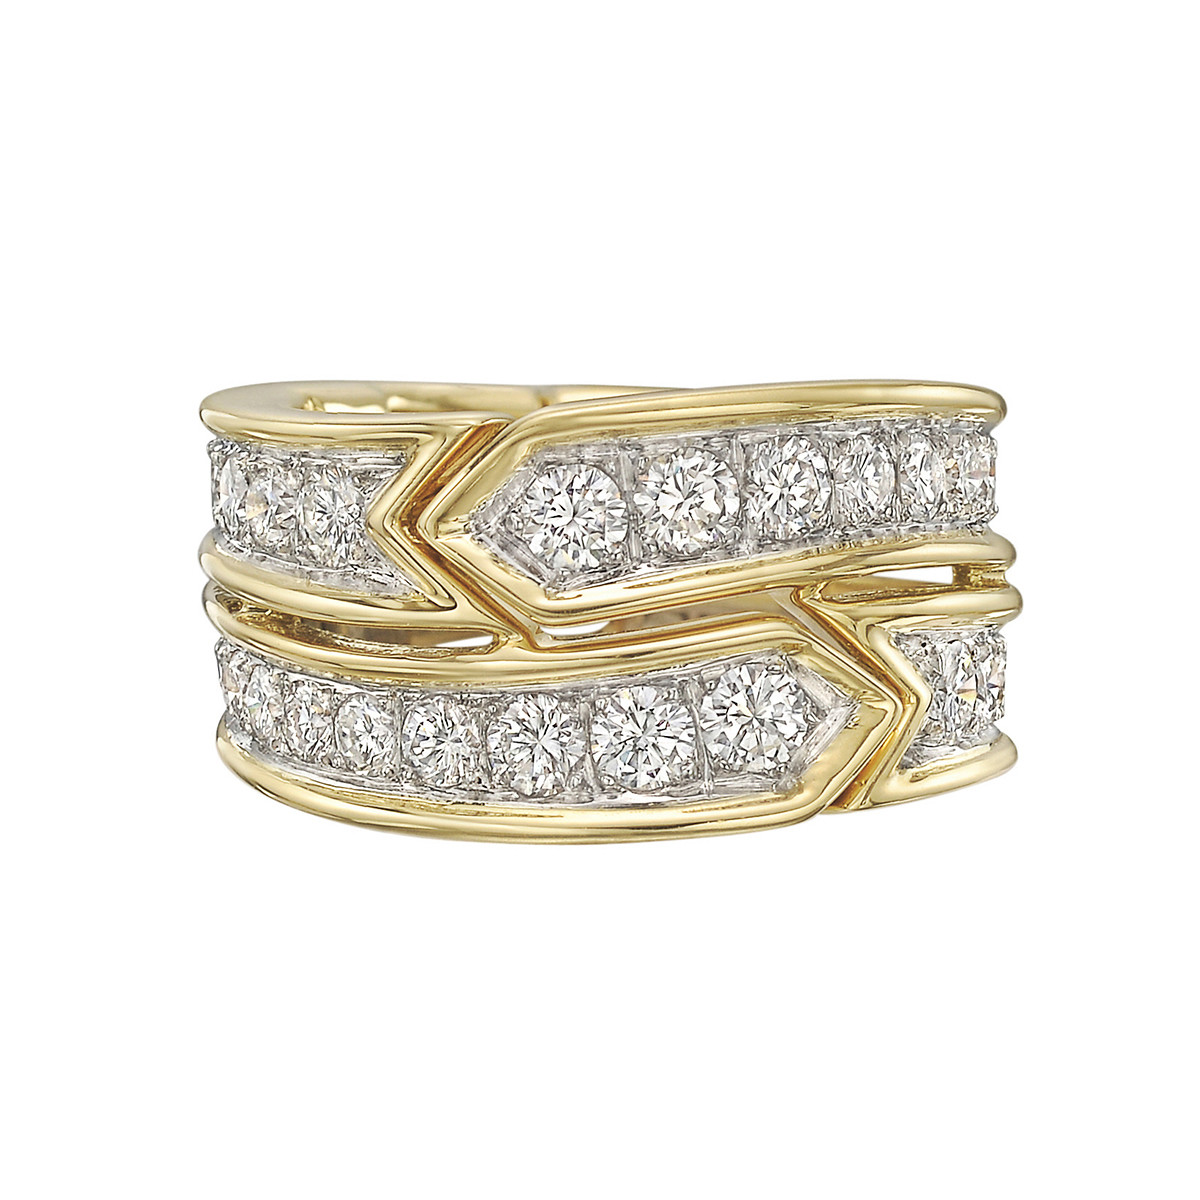 Donald Claflin 18k Gold, Platinum & Diamond Ring